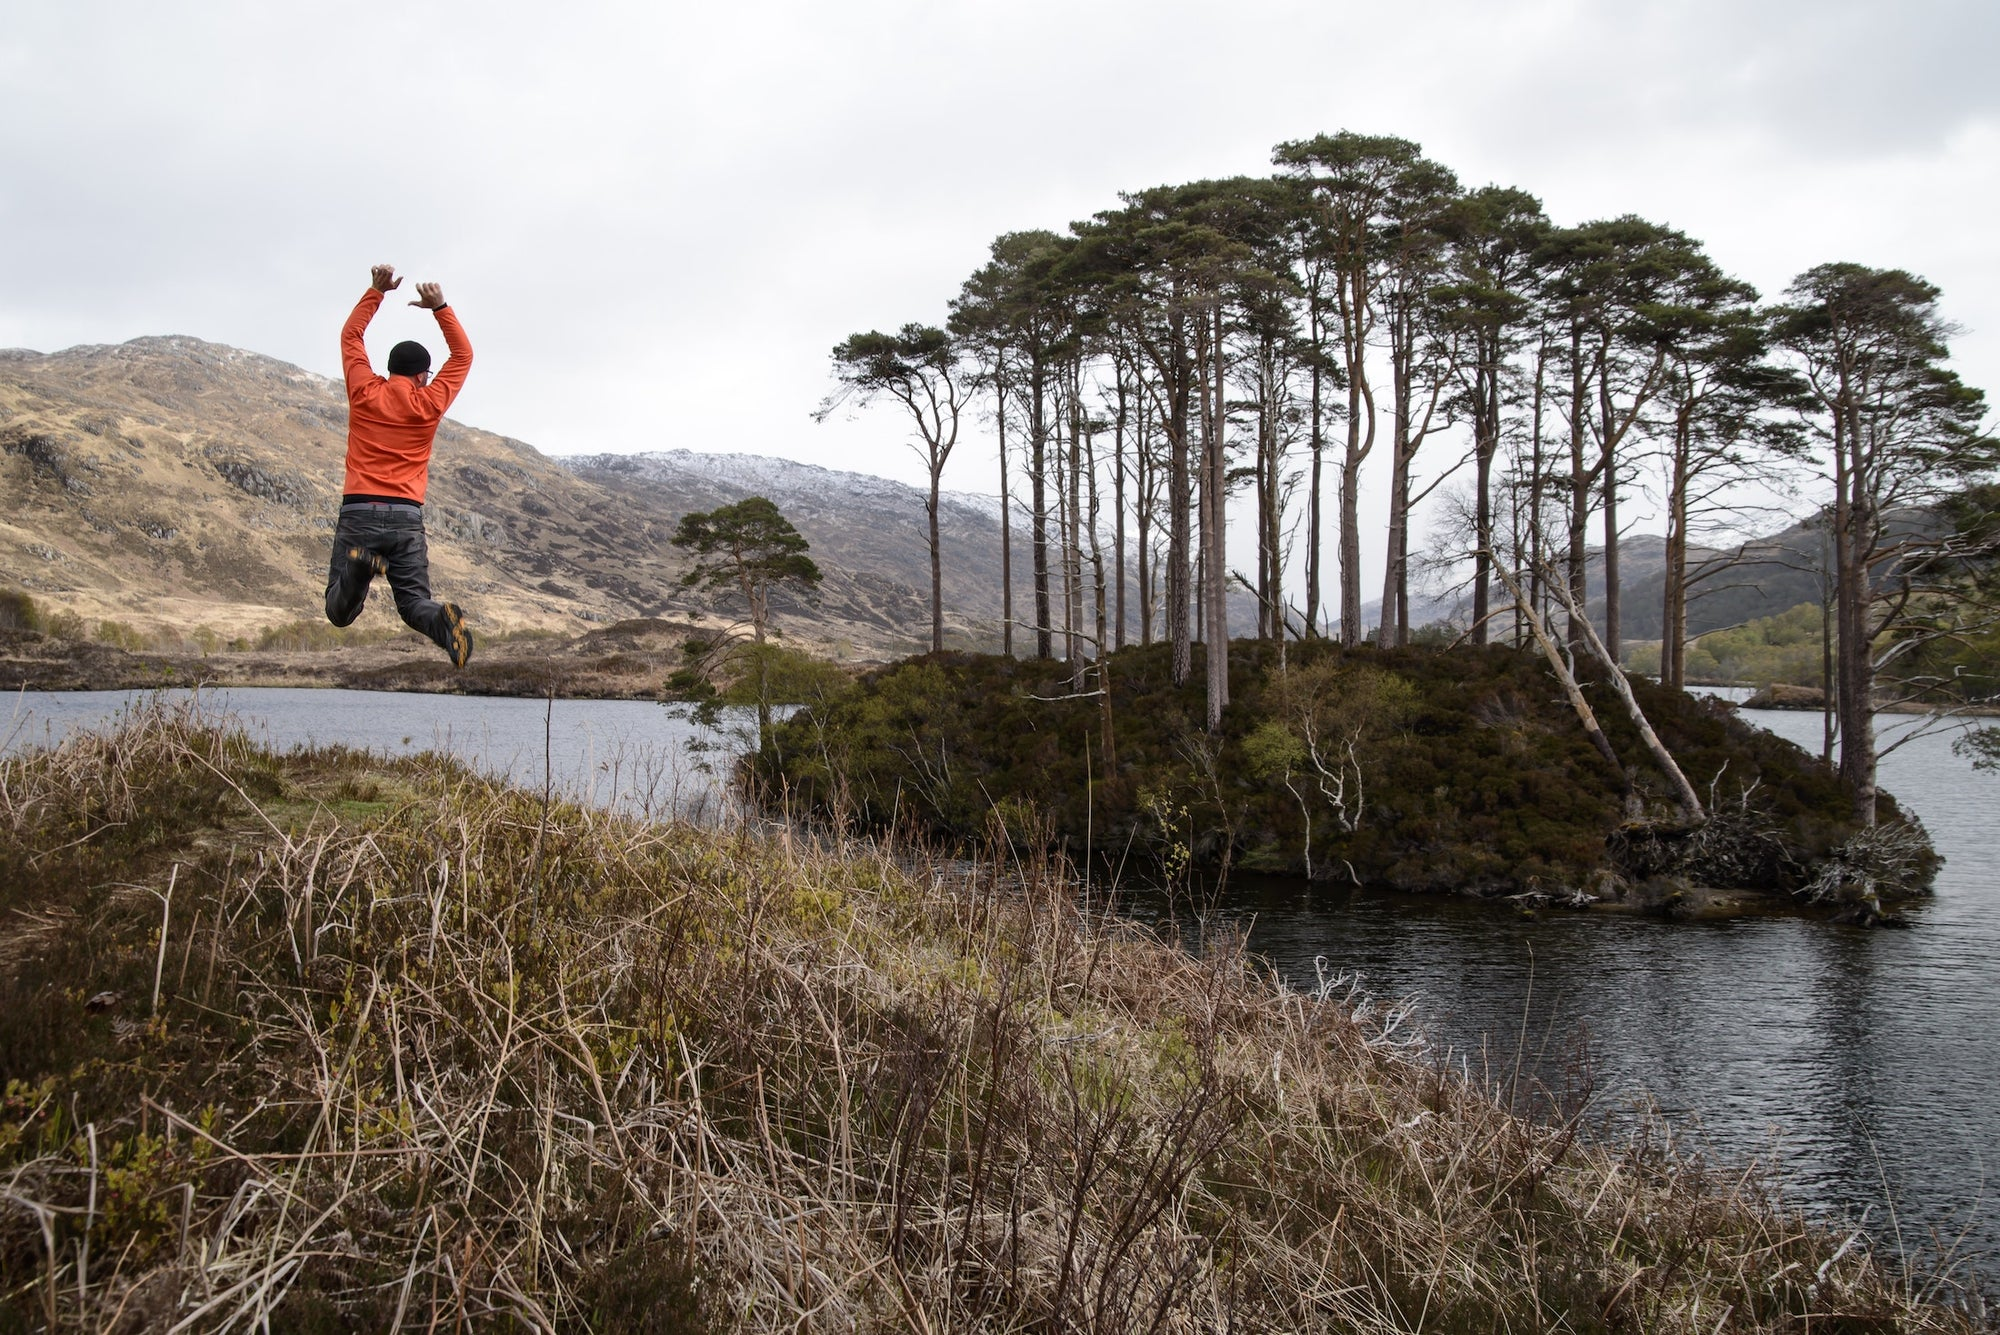 man jumping in the outdoors with trees and lake in background